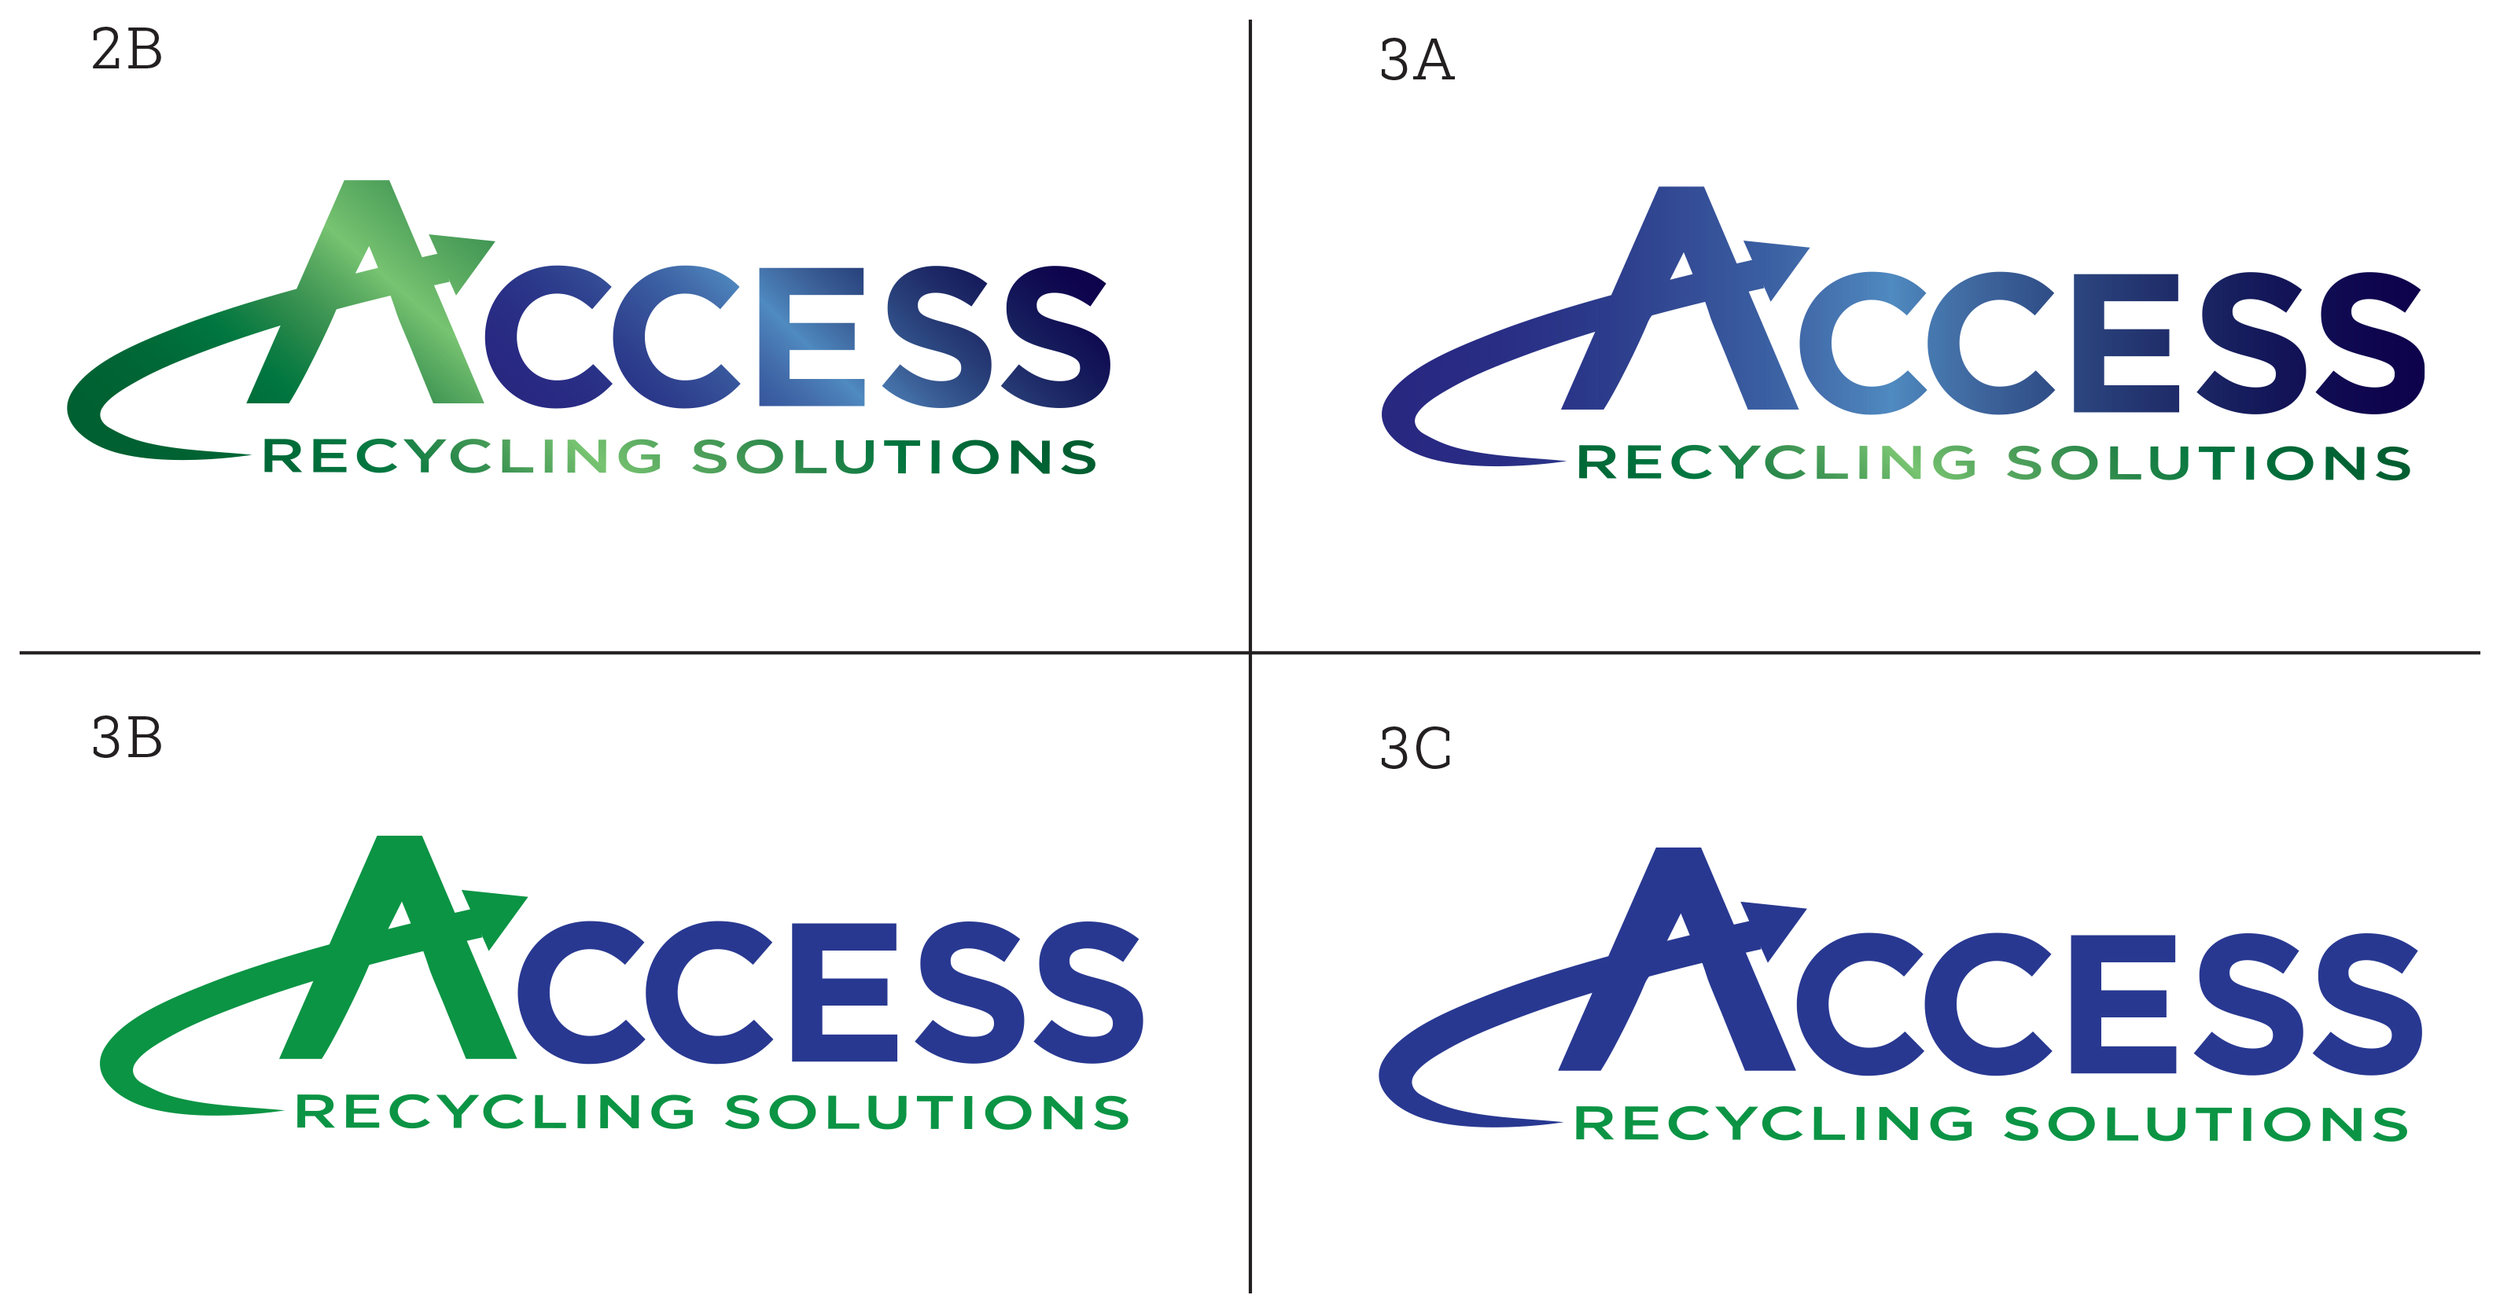 Second Round of Logo Concept Revisions